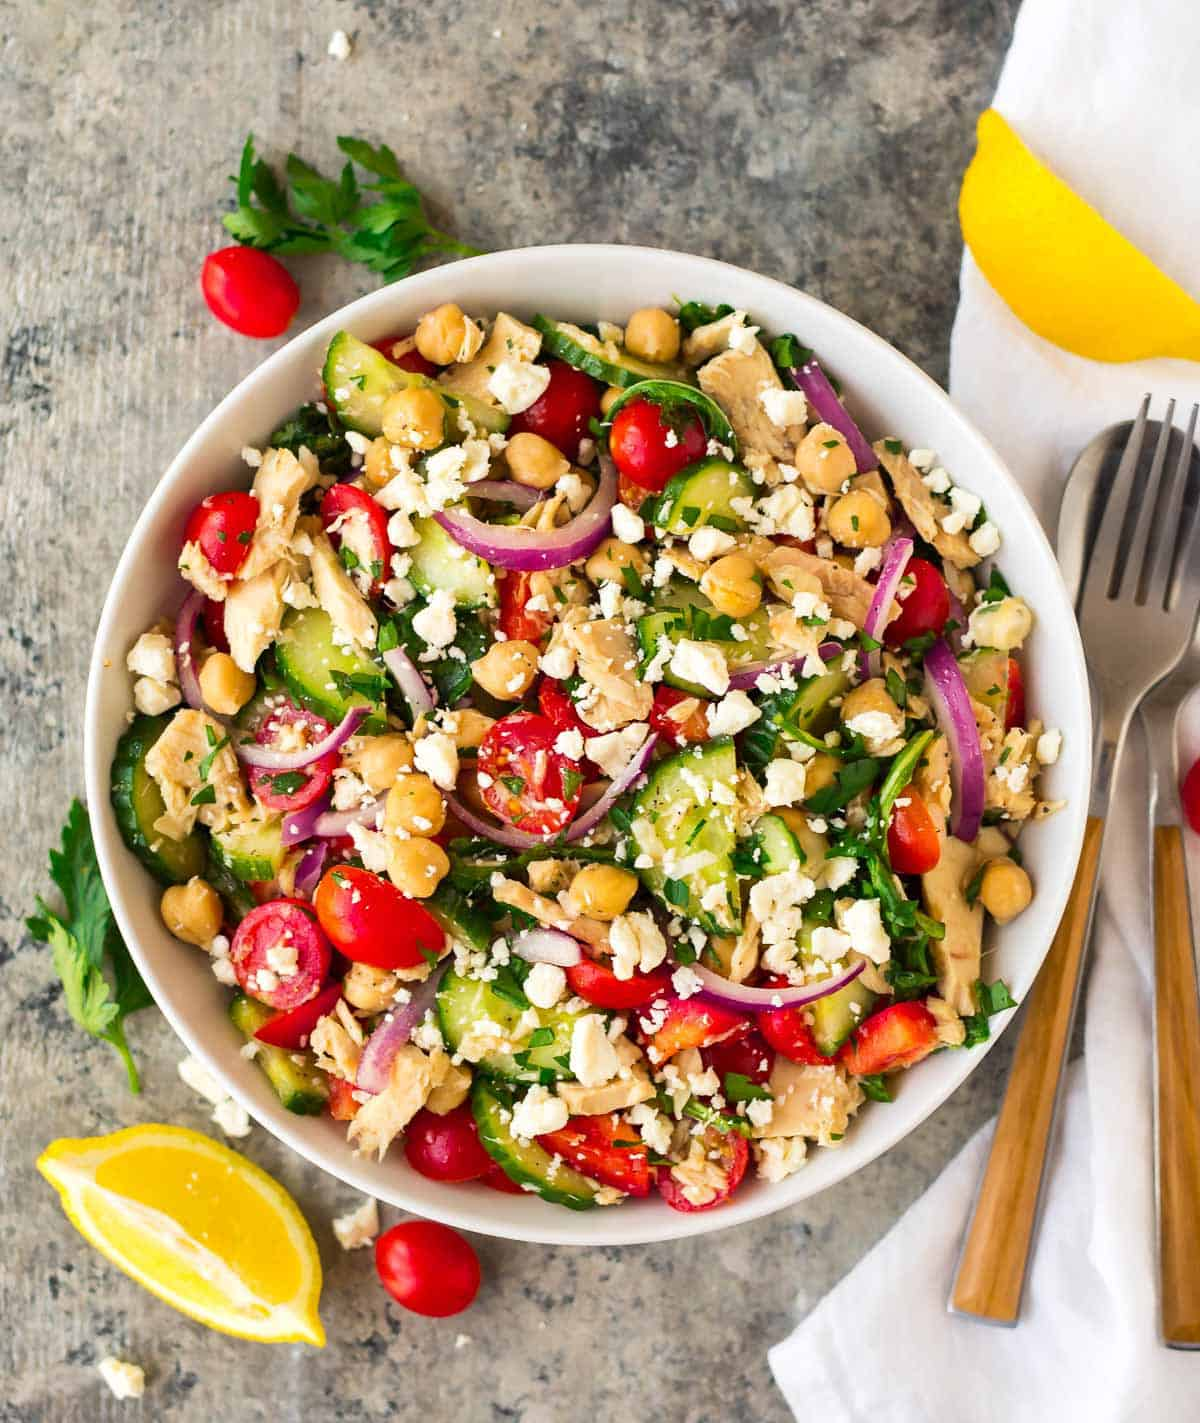 Healthy Chickpea Tuna Salad with fresh vegetables and lemon vinaigrette. A filling and delicious chickpea salad recipe!